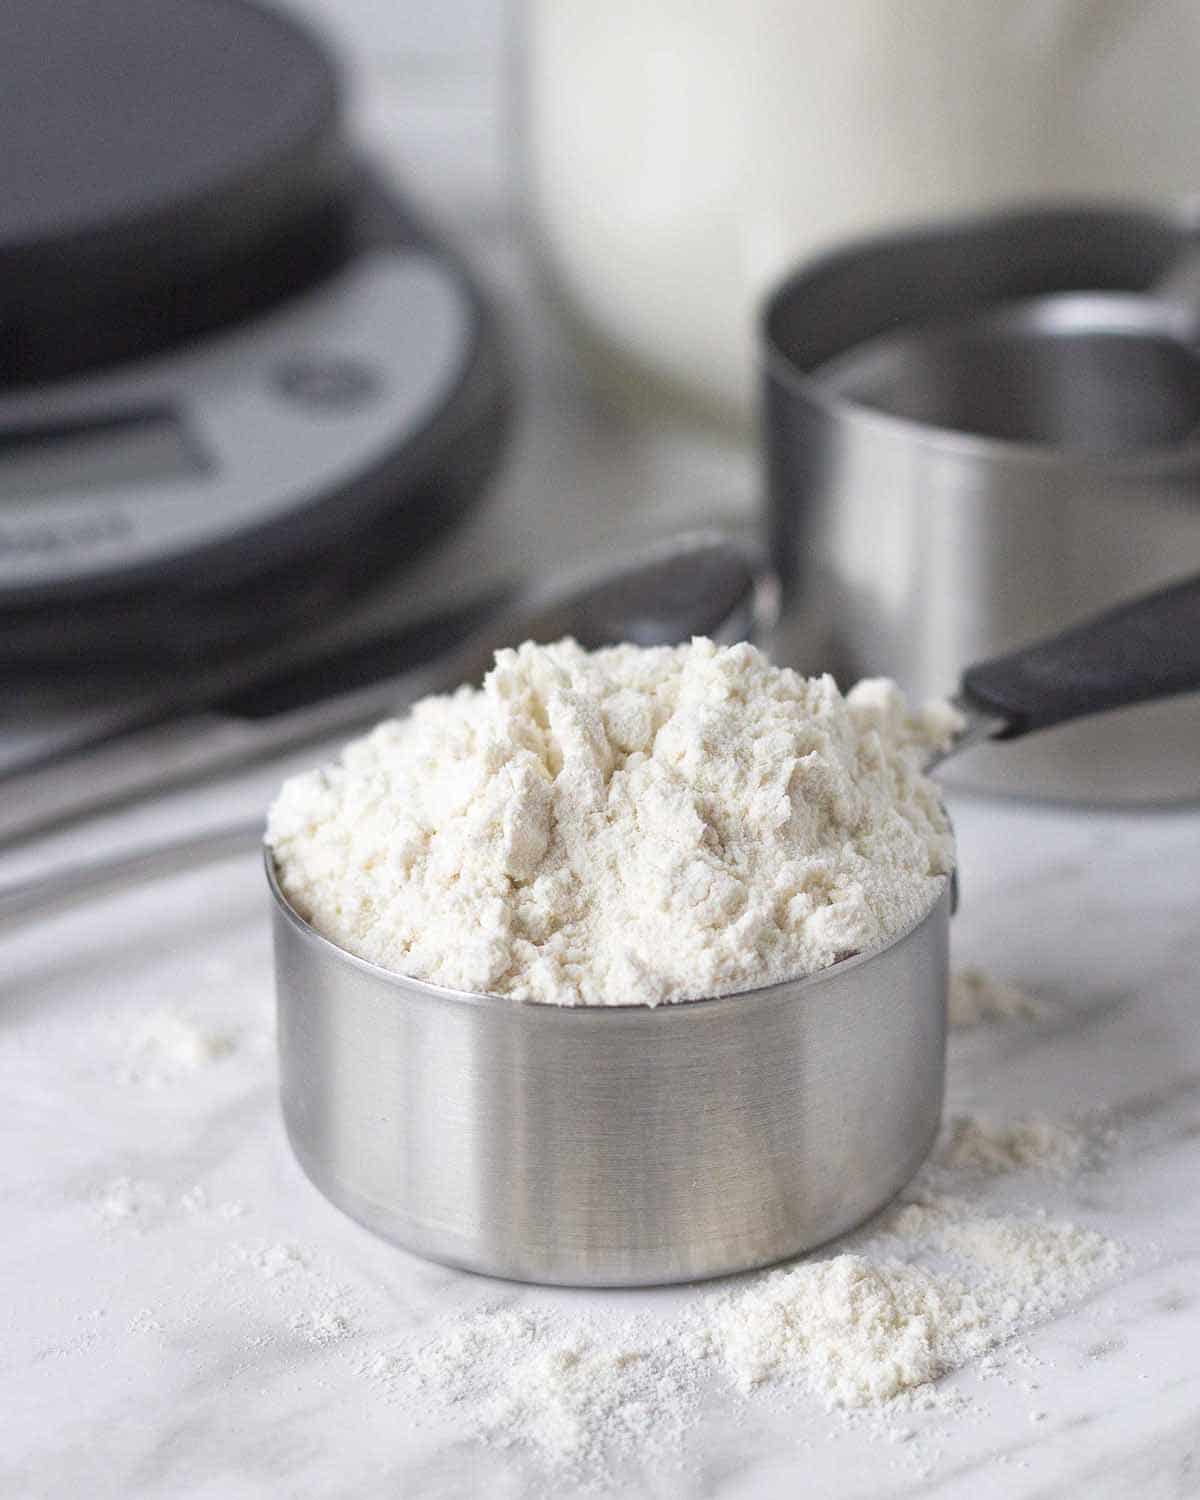 A measuring cup filled with flour, cup is sitting on a marble counter surface.